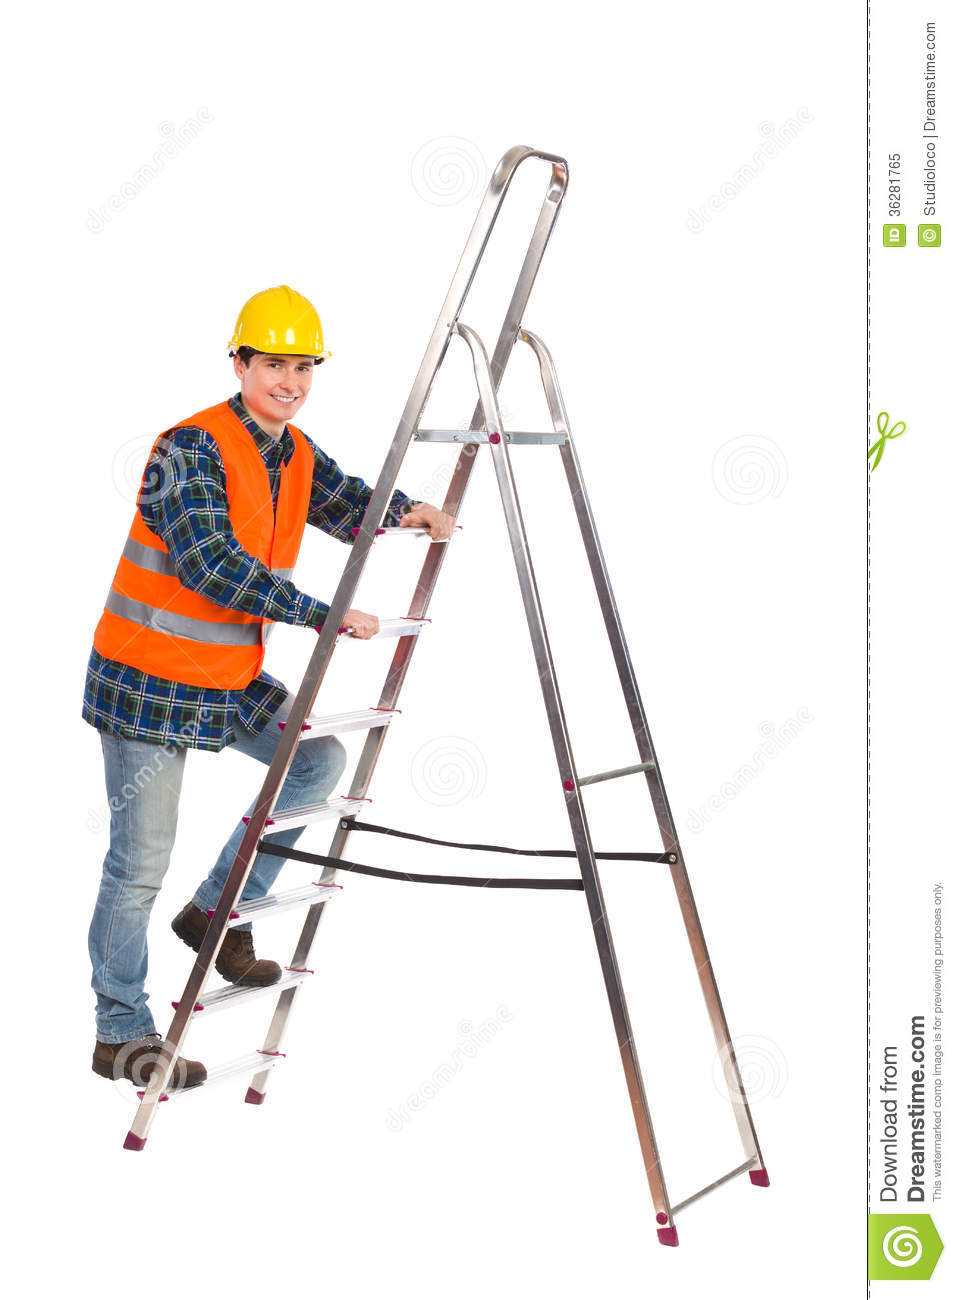 Construction Worker In Reflective Clothing Climbing A Ladder ... for Worker Climbing Ladder  285eri